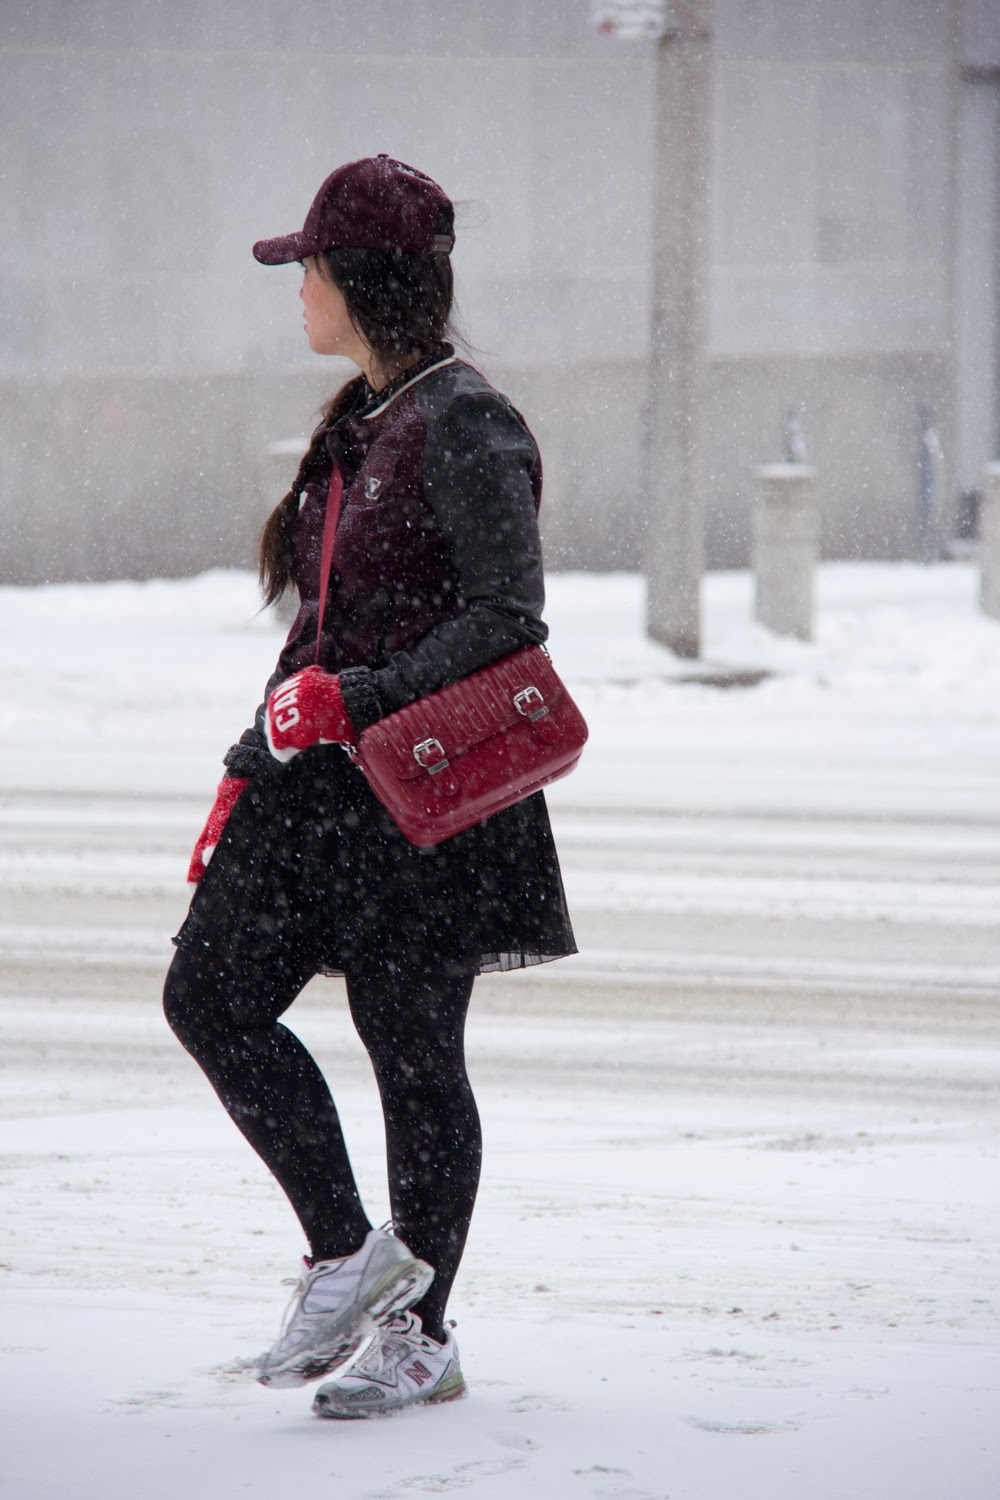 Snowy-Day, Street-Style, Winter-Outfit, Sporty-Look, Fashion-Blogger